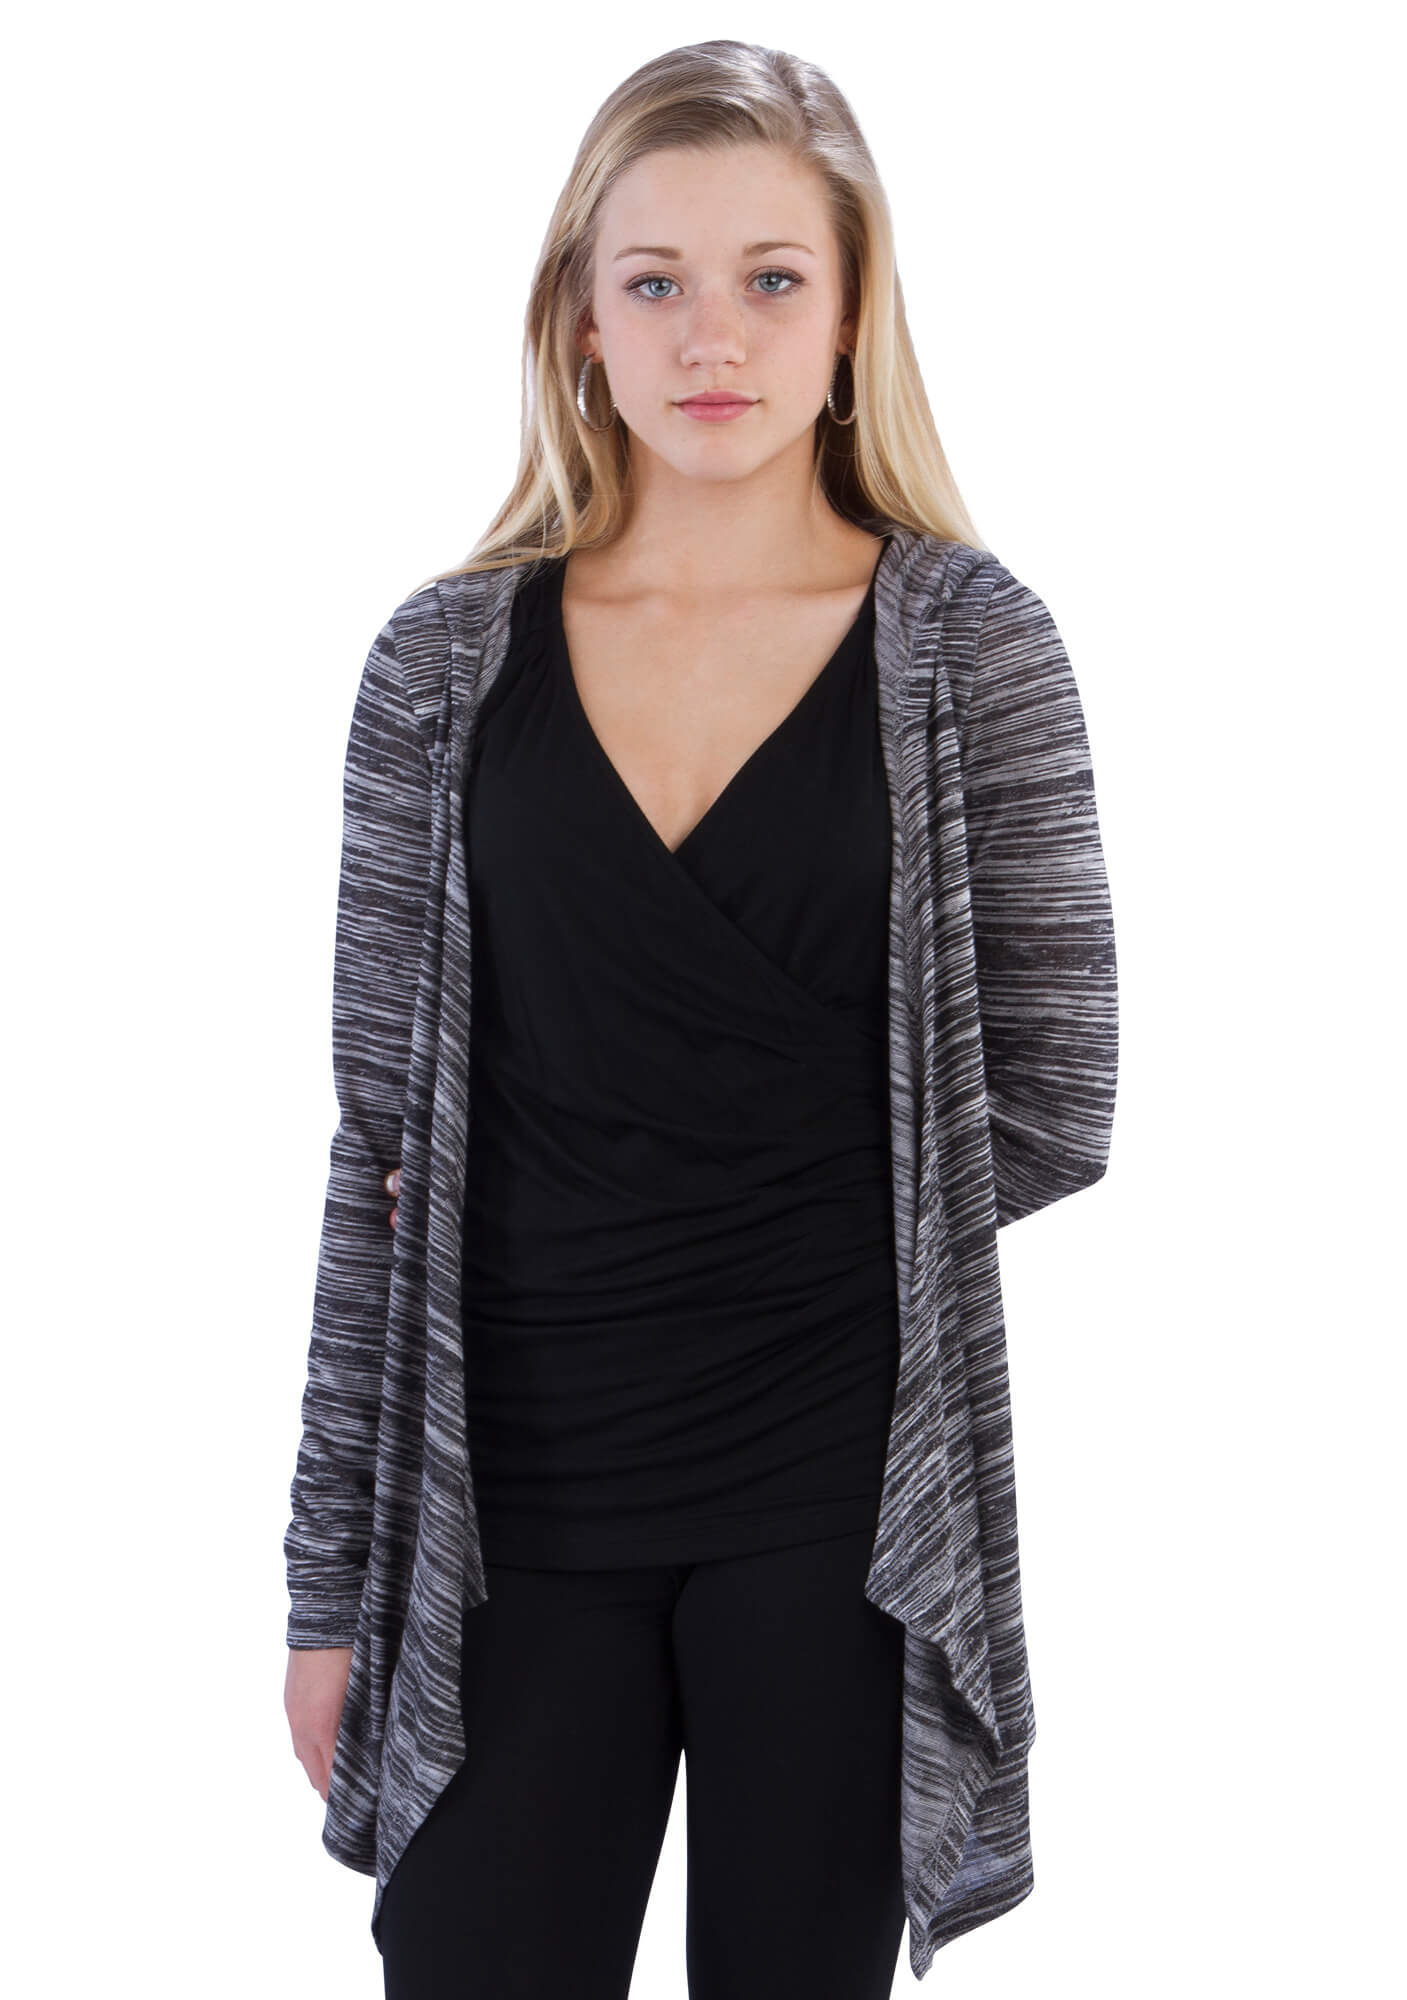 Space Dye Hoodie Cardigan with Drape Front